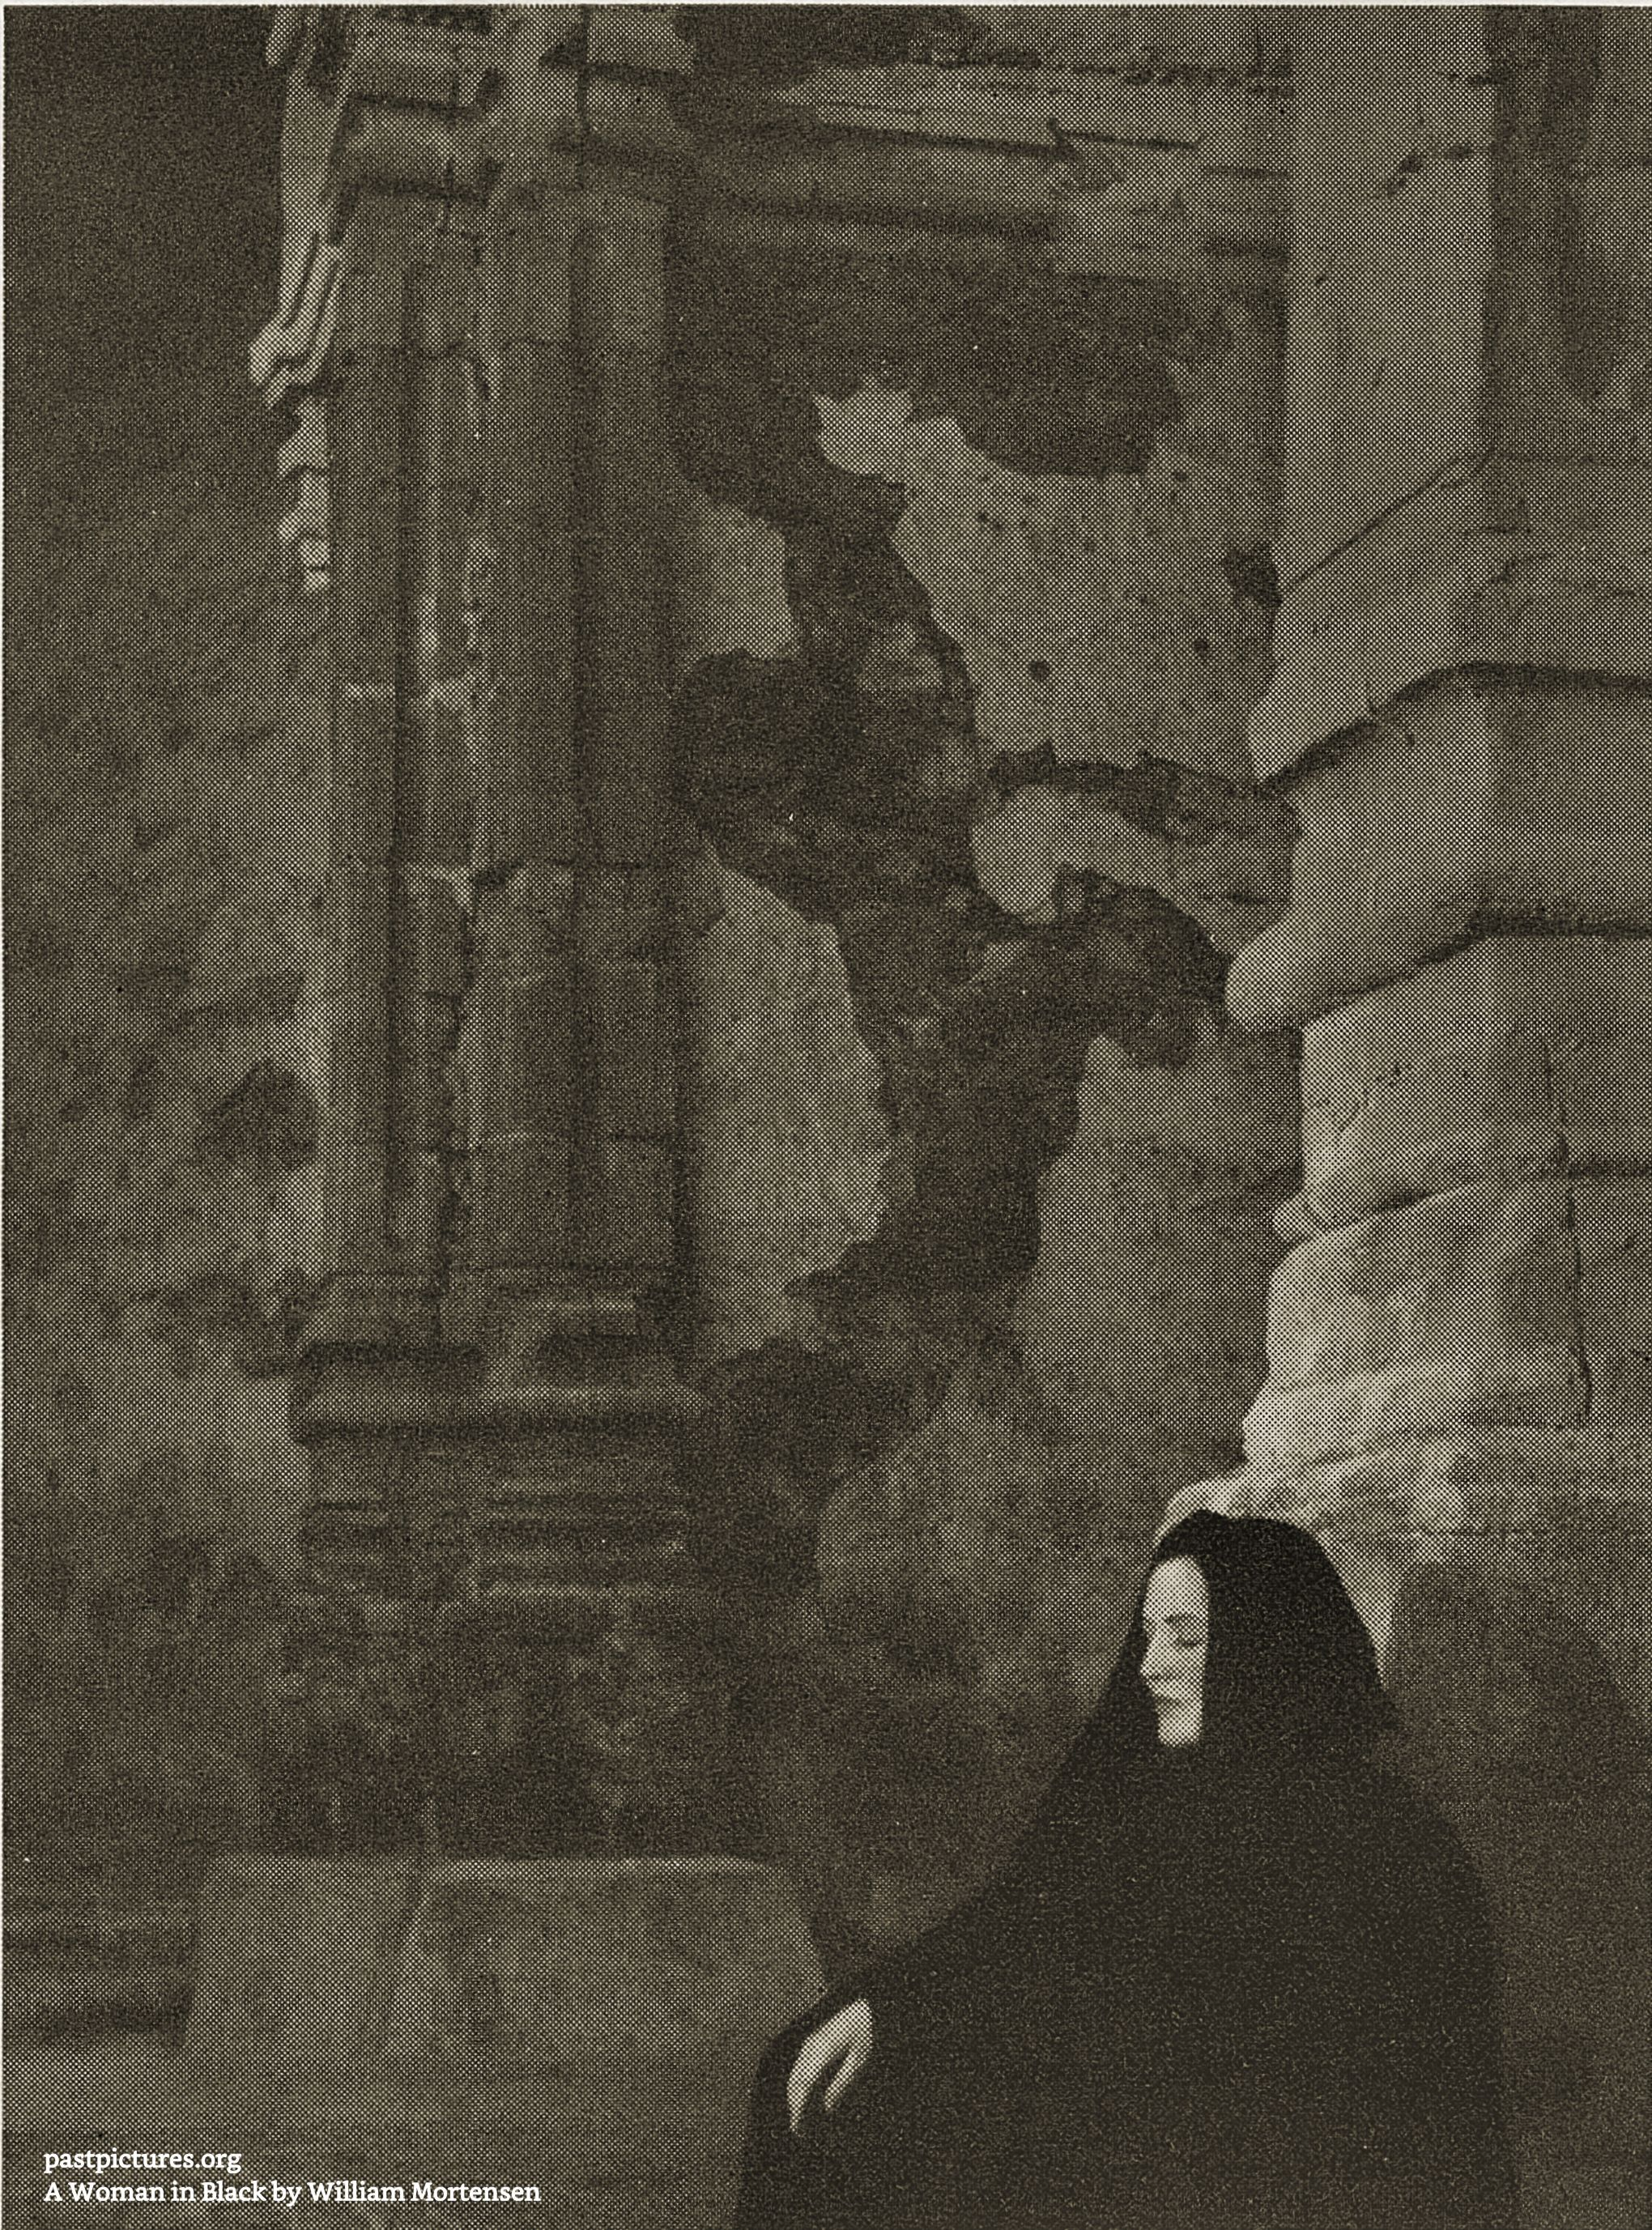 A Woman in Black by William Mortensen about 1930 (2 photos)